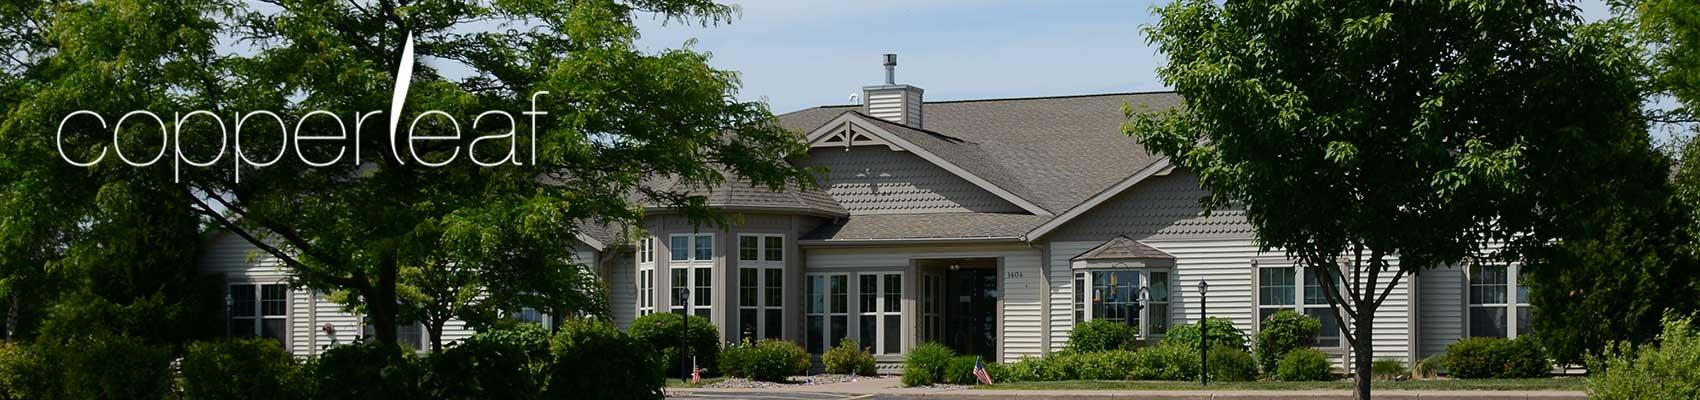 Assisted Living assisted living facilities St. Peter Wisconsin Fond du Lac County